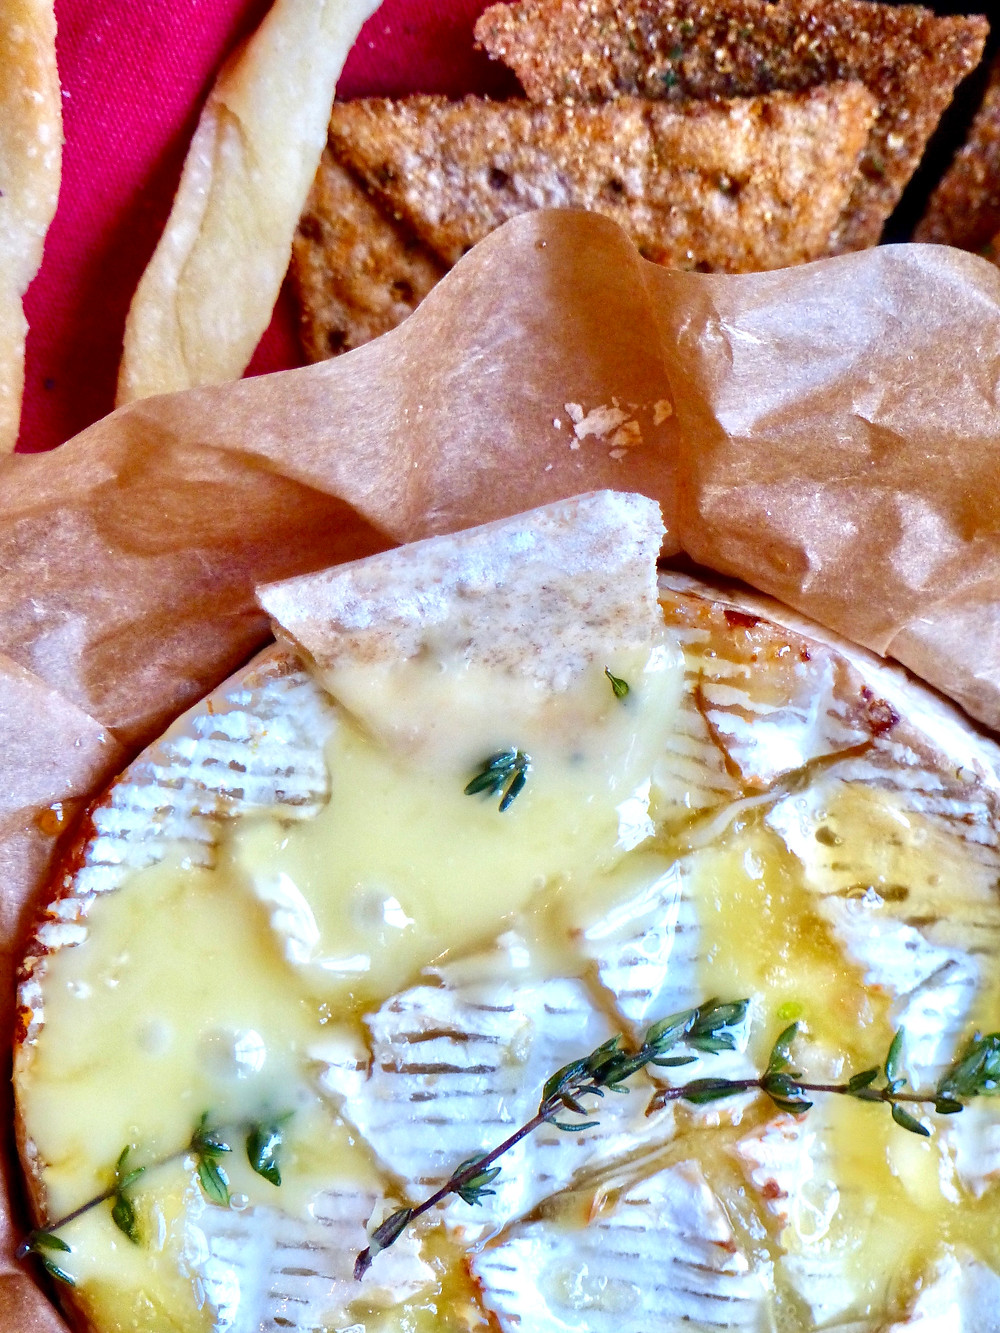 Baked camembert, stuffed with sliced garlic and drizzled with a truffle oil & honey mixture and thyme